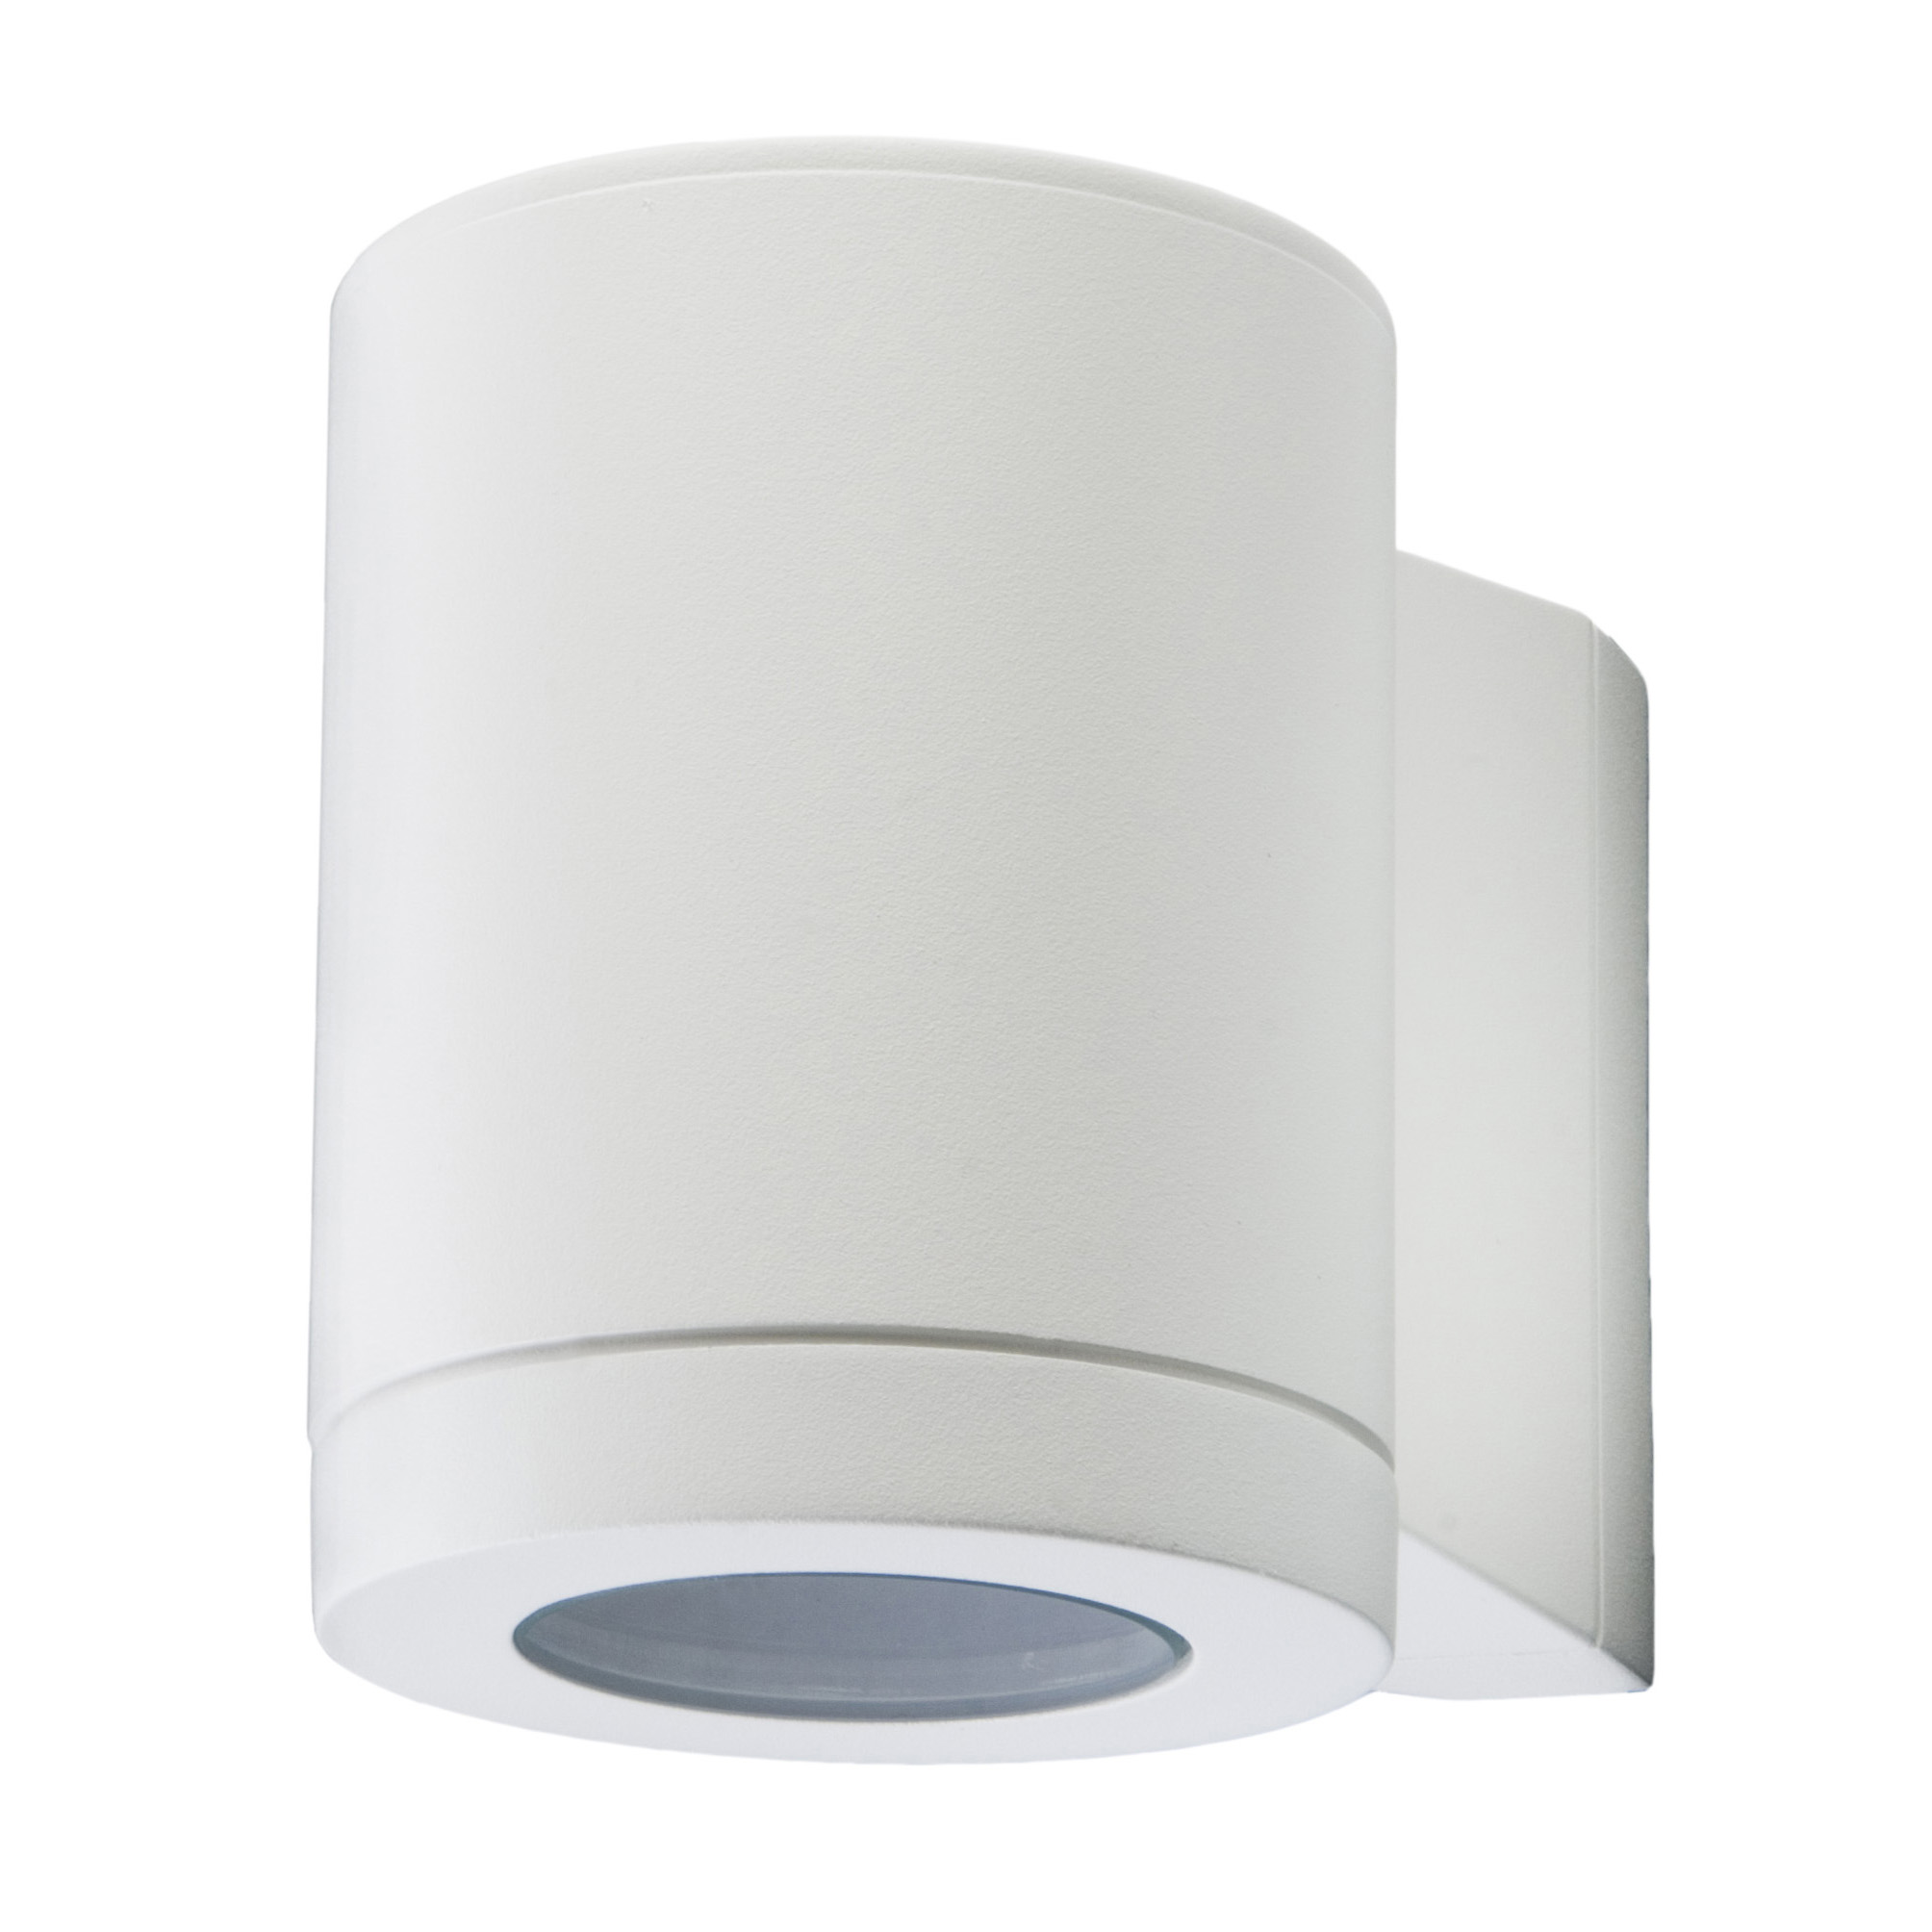 SG lighting LED Metro wit 611690 wand